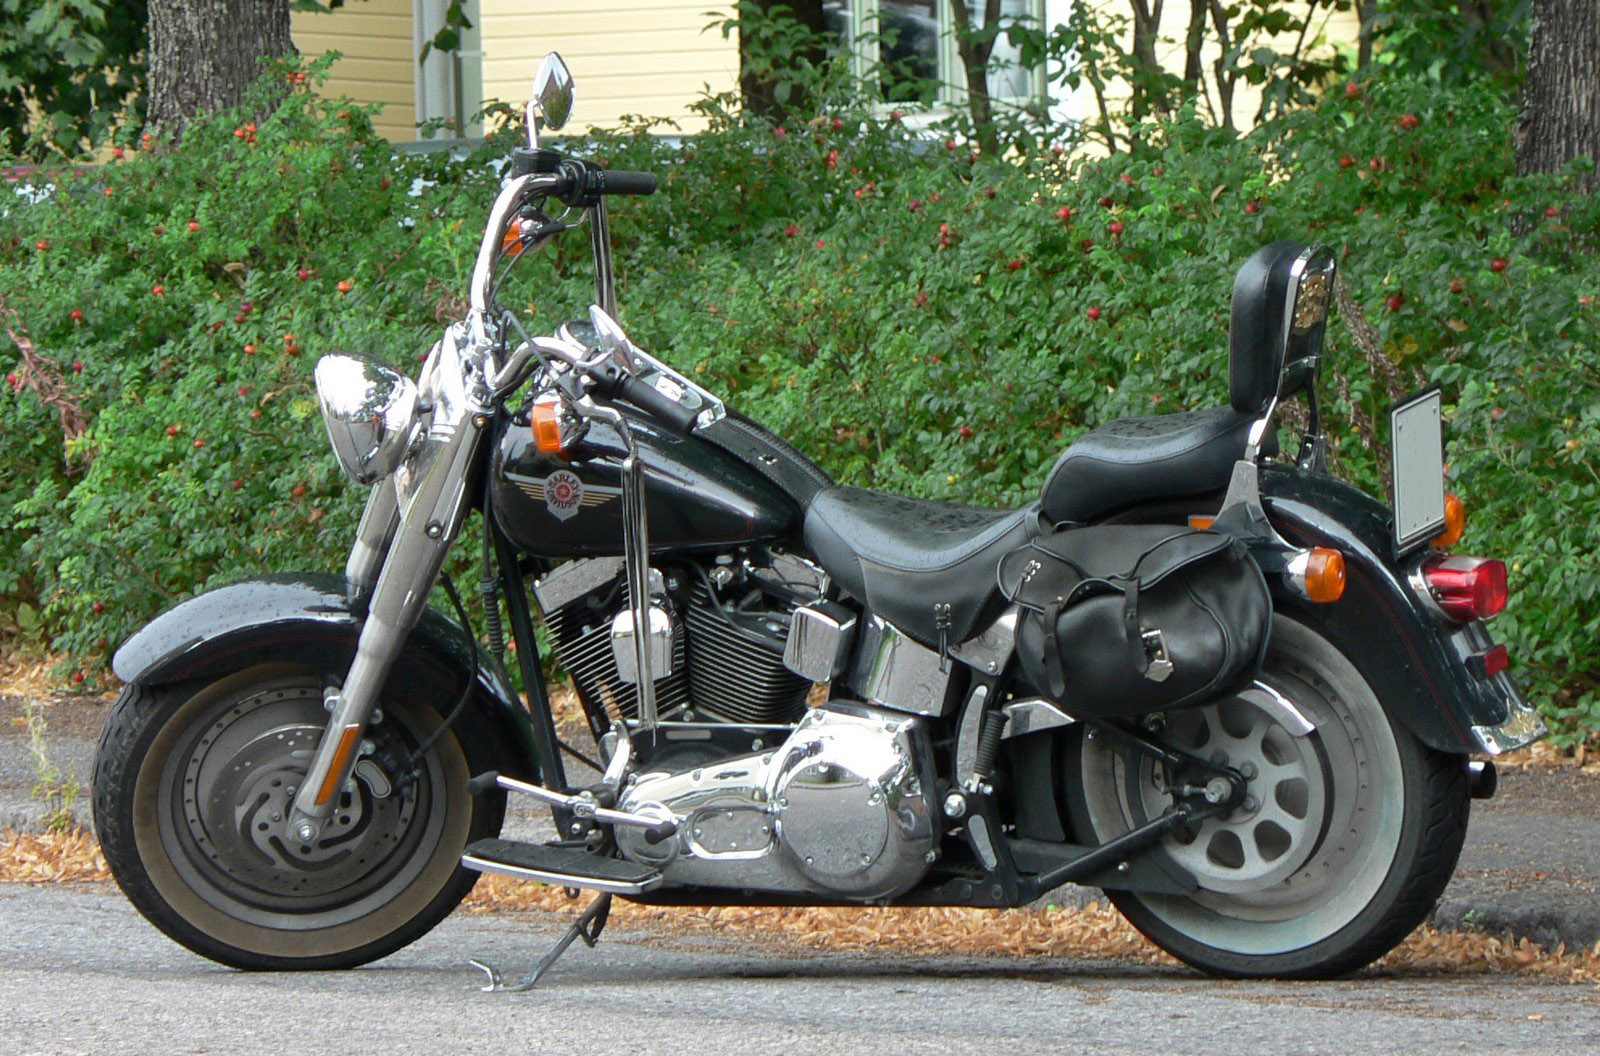 harley davidson sustaining a competitive position An old harley-davidson motorcycle at the auto & technic museum in germany a five forces analysis of harley-davidson indicates that competition is a major force based on external factors in the motorcycle industry environment.